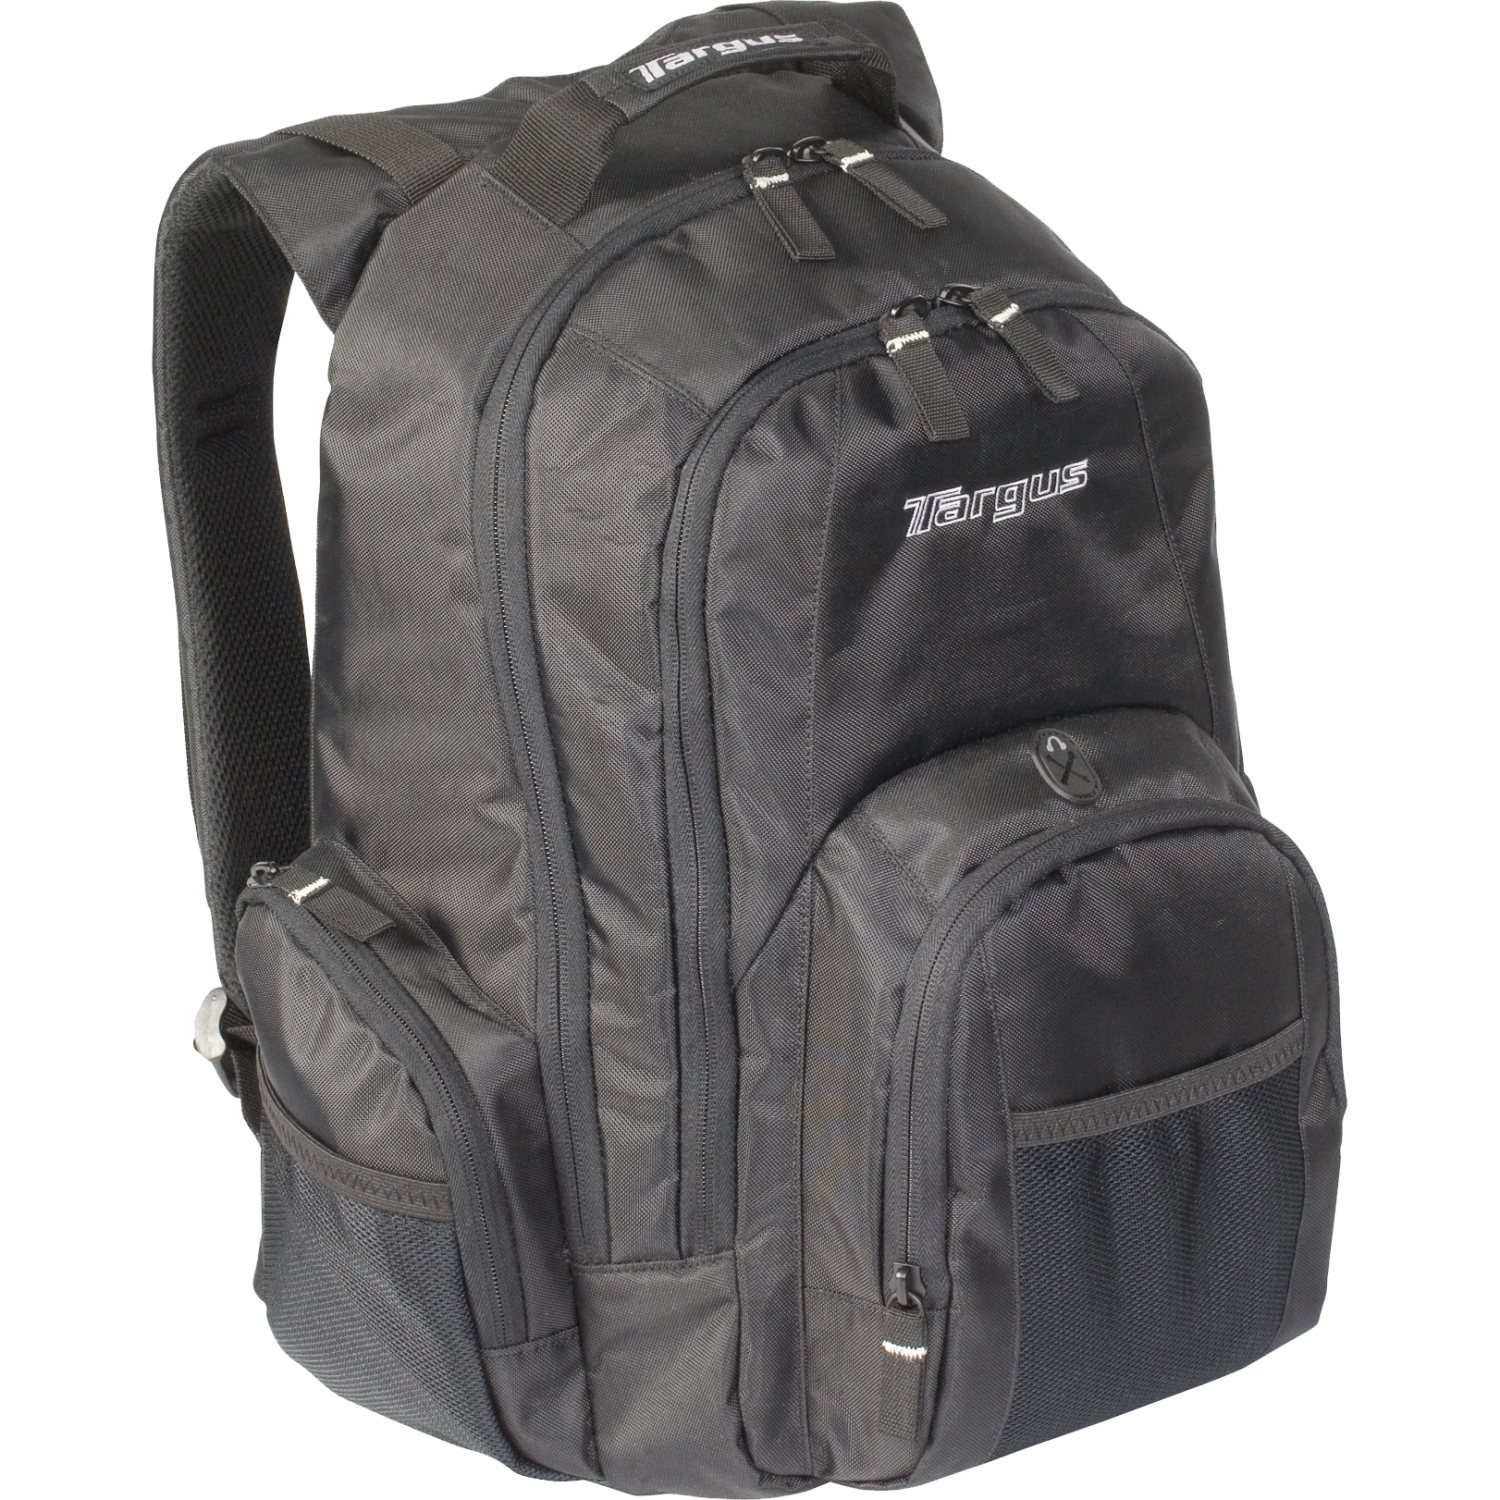 Groove CVR600 Notebook Backpack with Bryant Logo - 15 inch x 17 inch x 7.75 inch - Nylon - Black